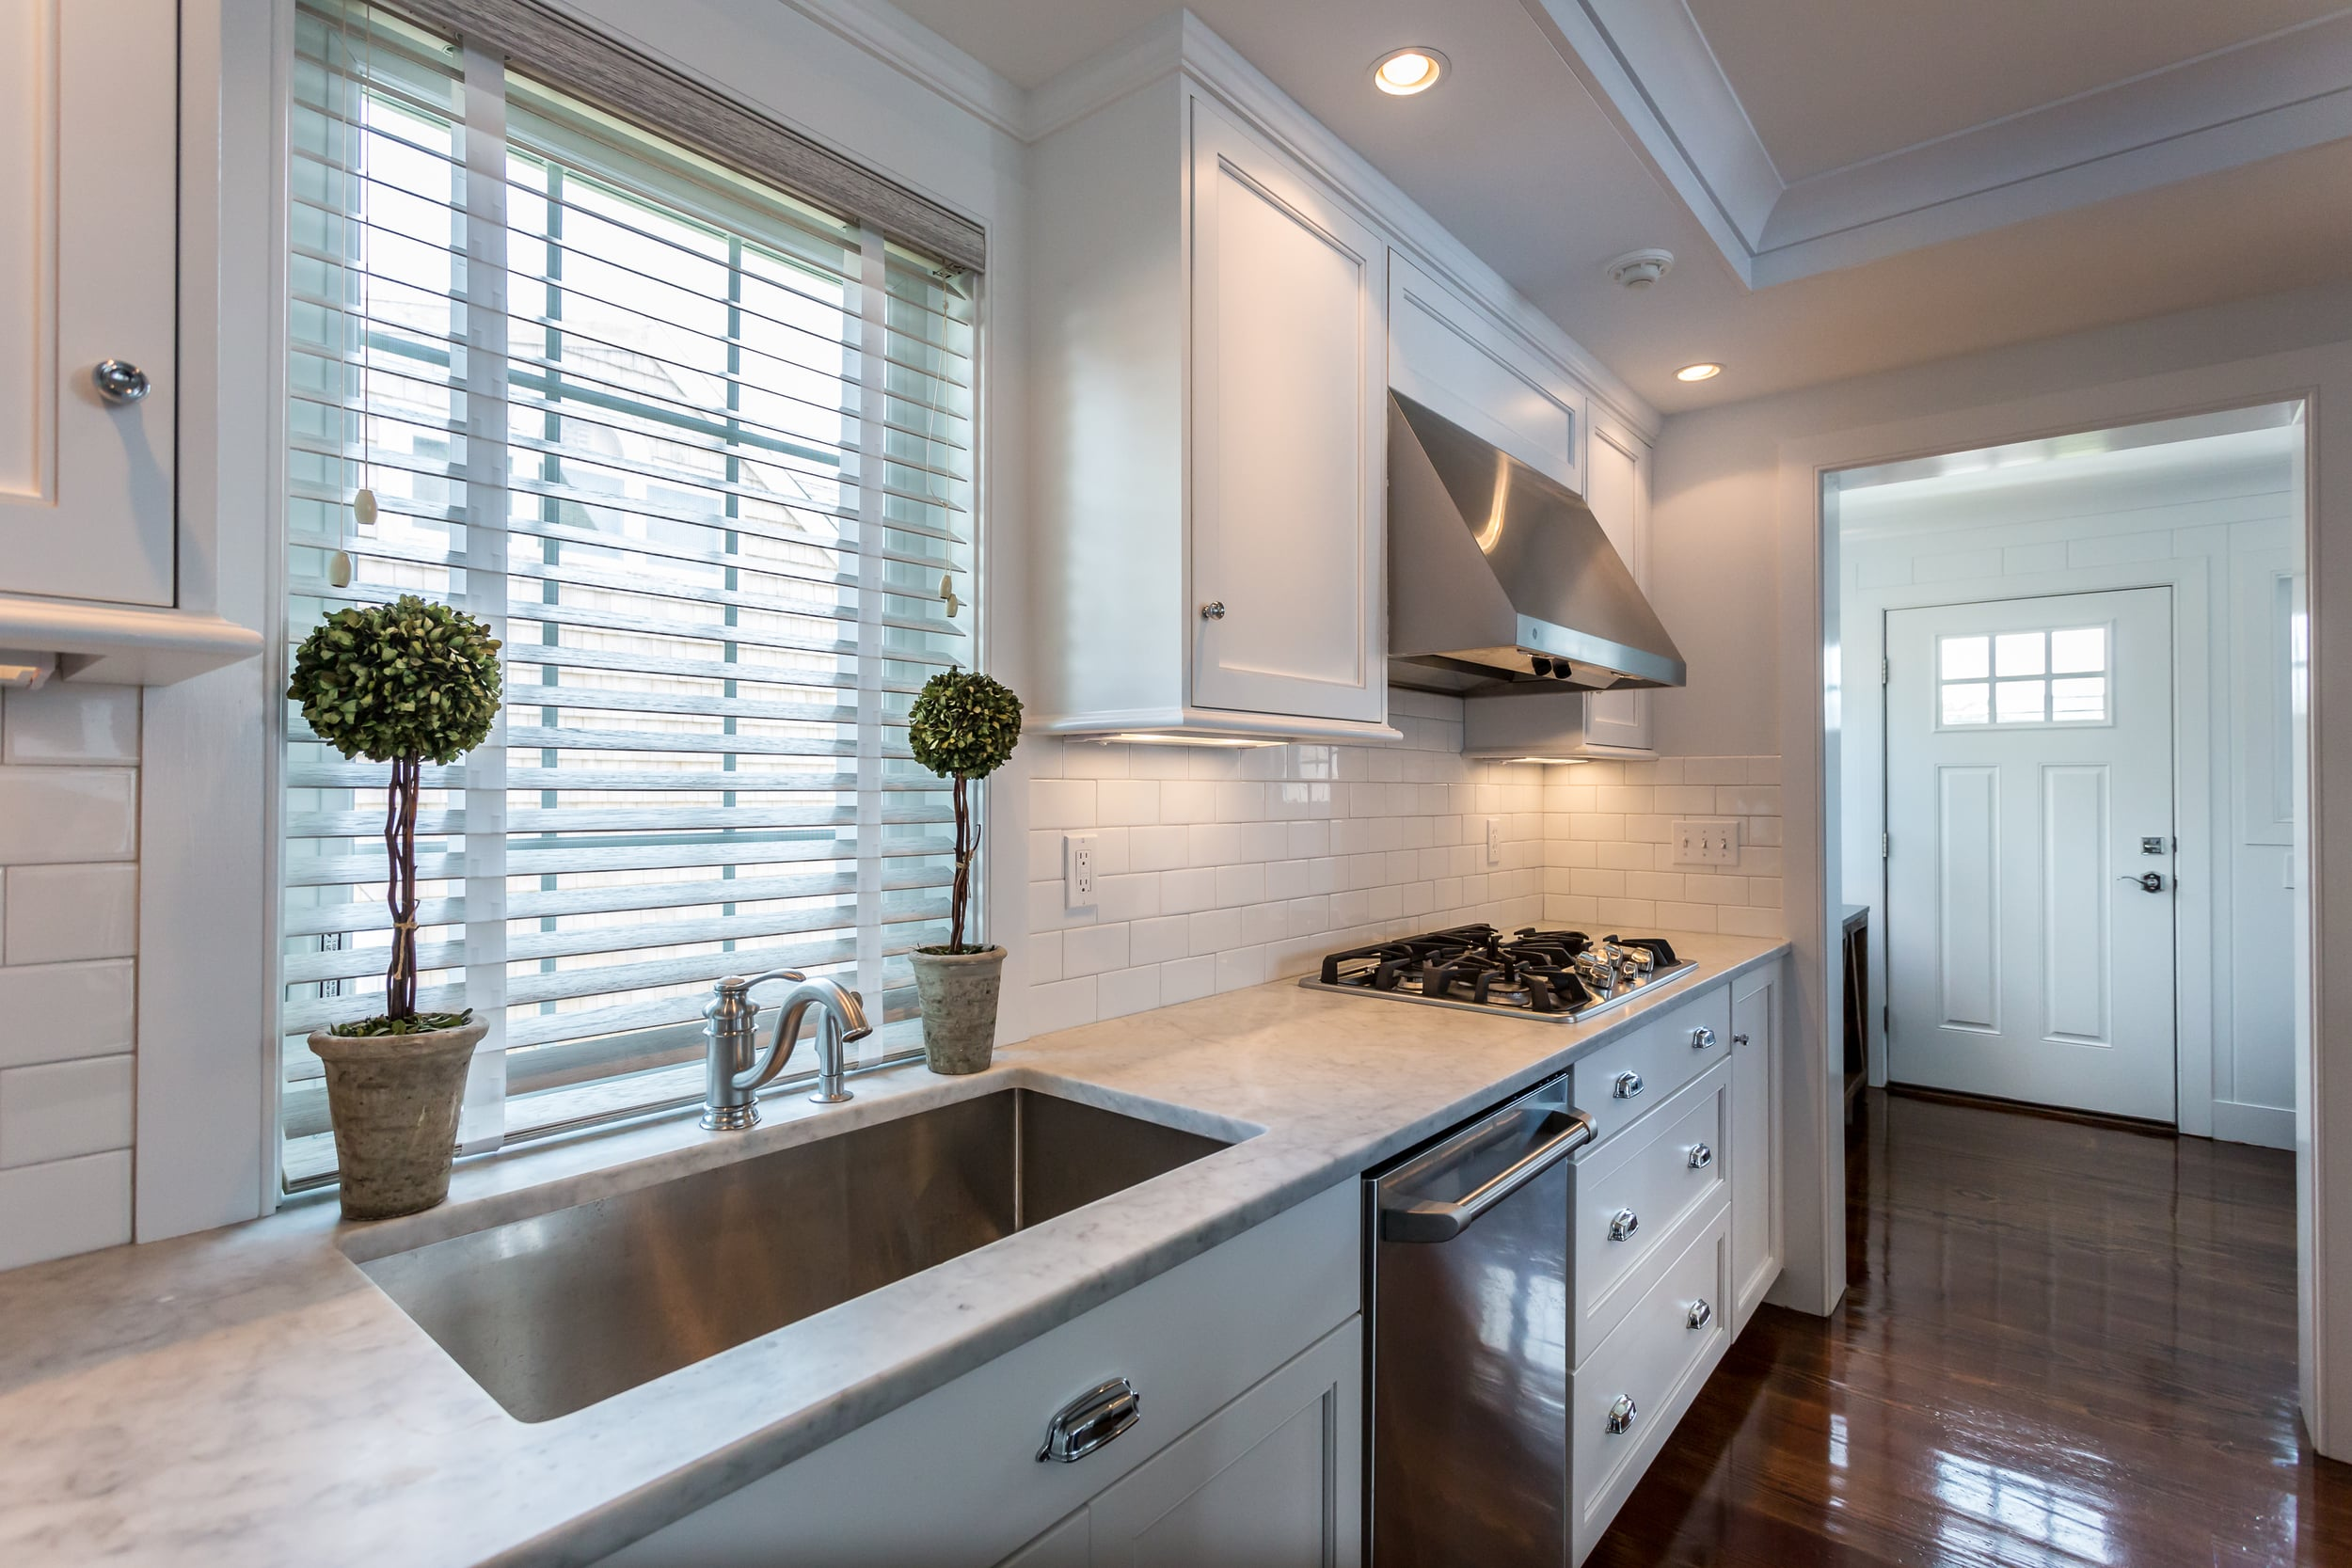 Kitchen Remodeling in Fairfield, CT